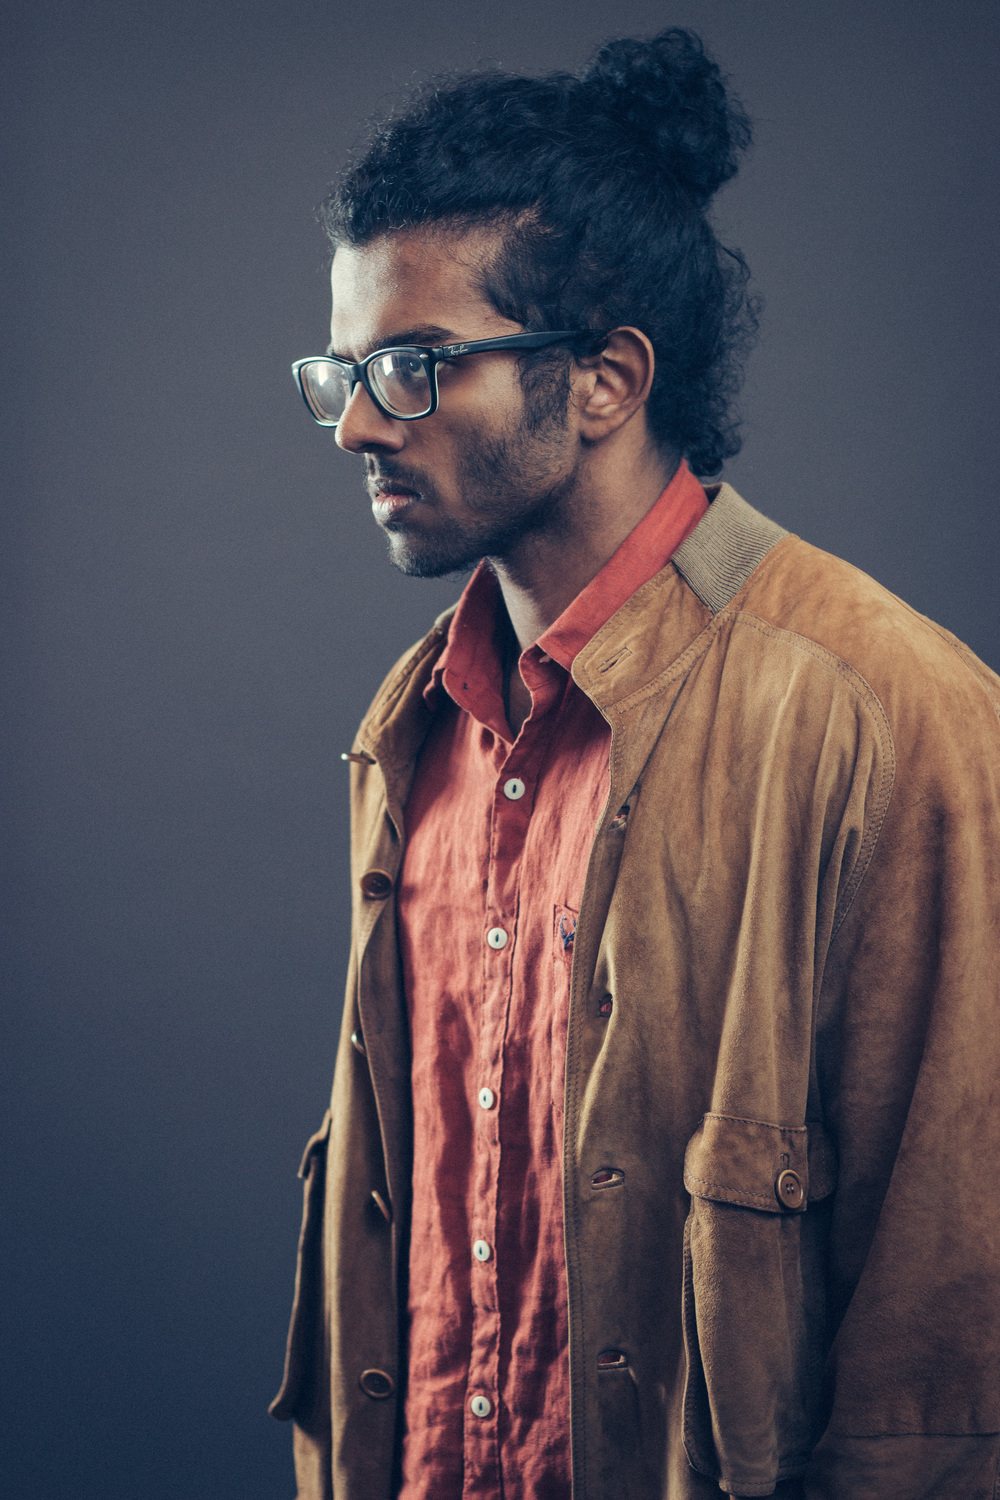 Jyothis Padmanabhan // Joe with the Glasses